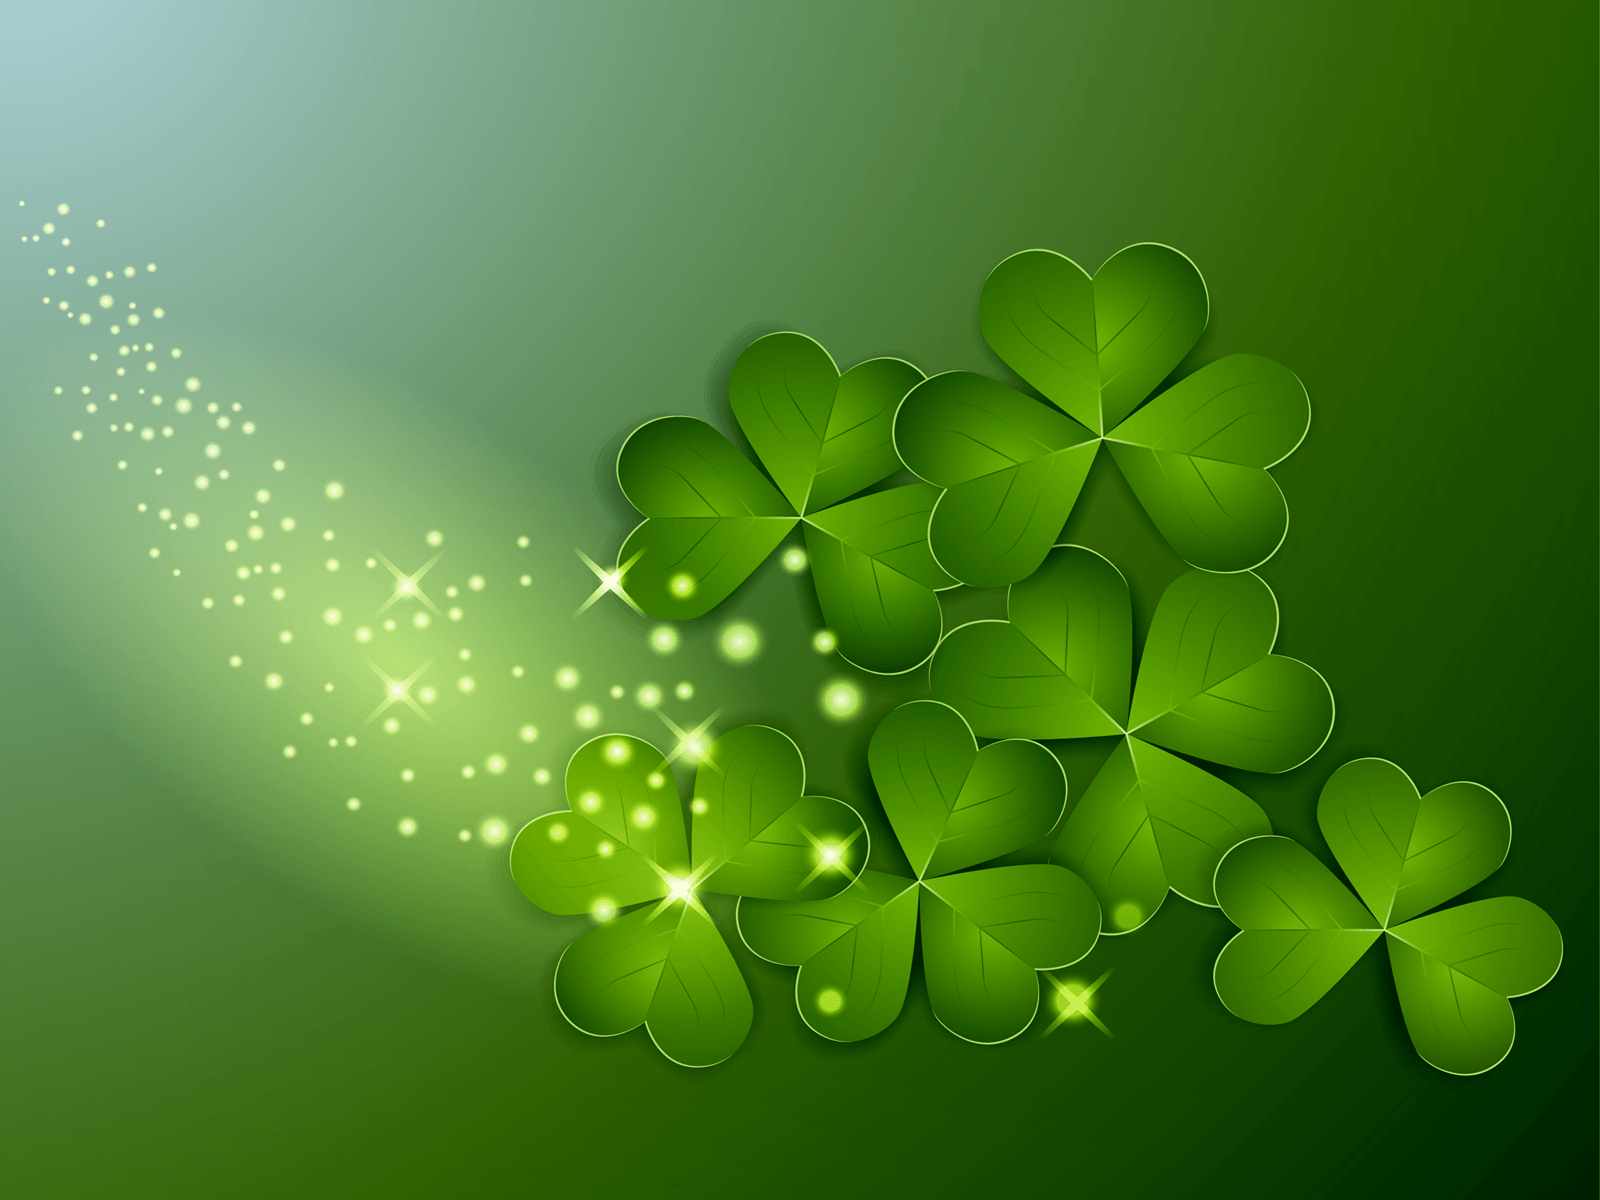 simple st patrick wallpaper - photo #18